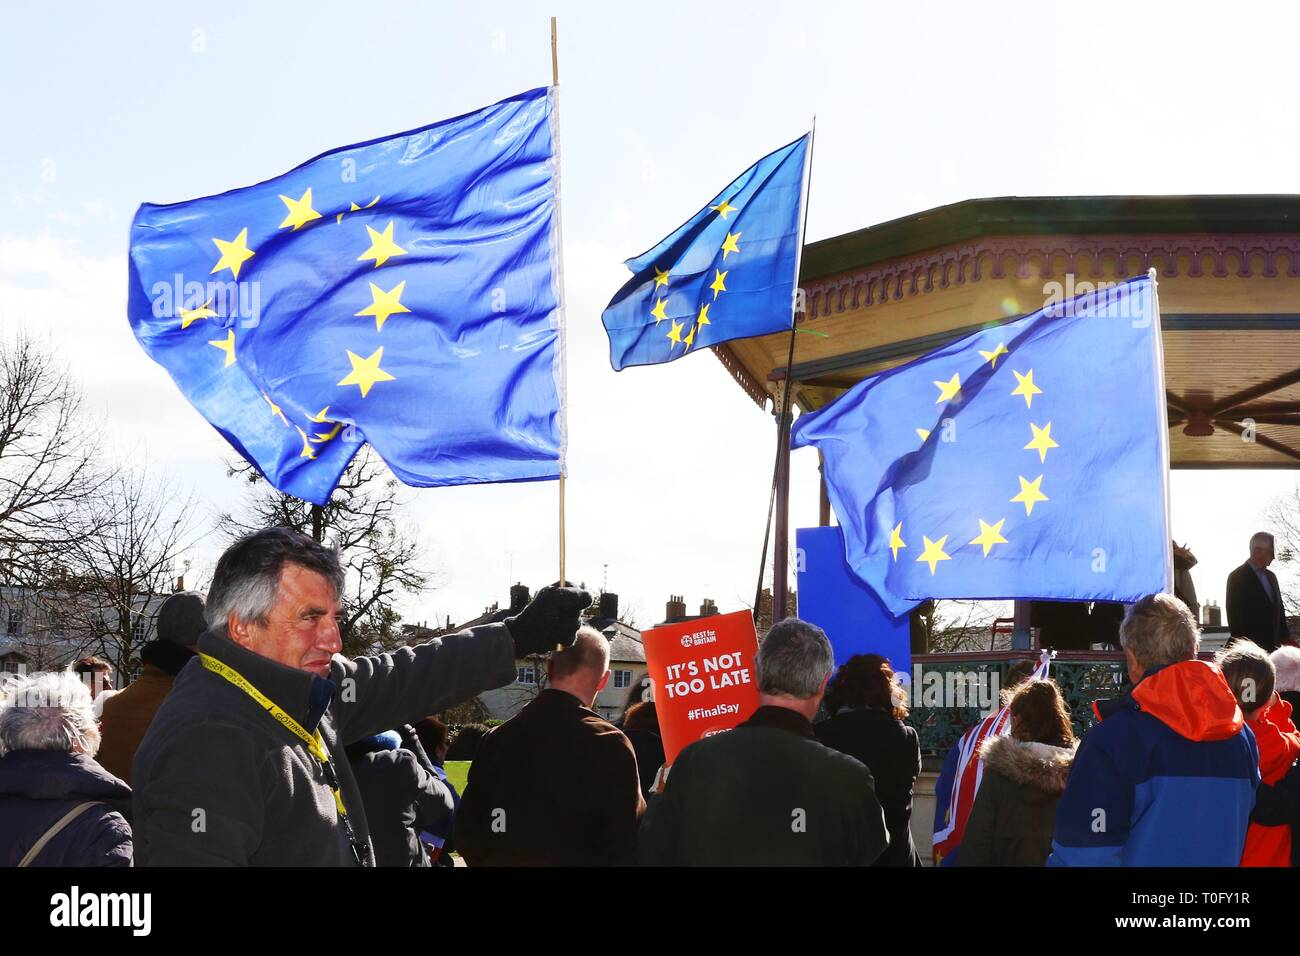 Anti Brexit rally in Cheltenham - Remainers chase masked Brexiteers through the town - 9.3.2019   Picture by Antony Thompson - Thousand Word Media, NO - Stock Image